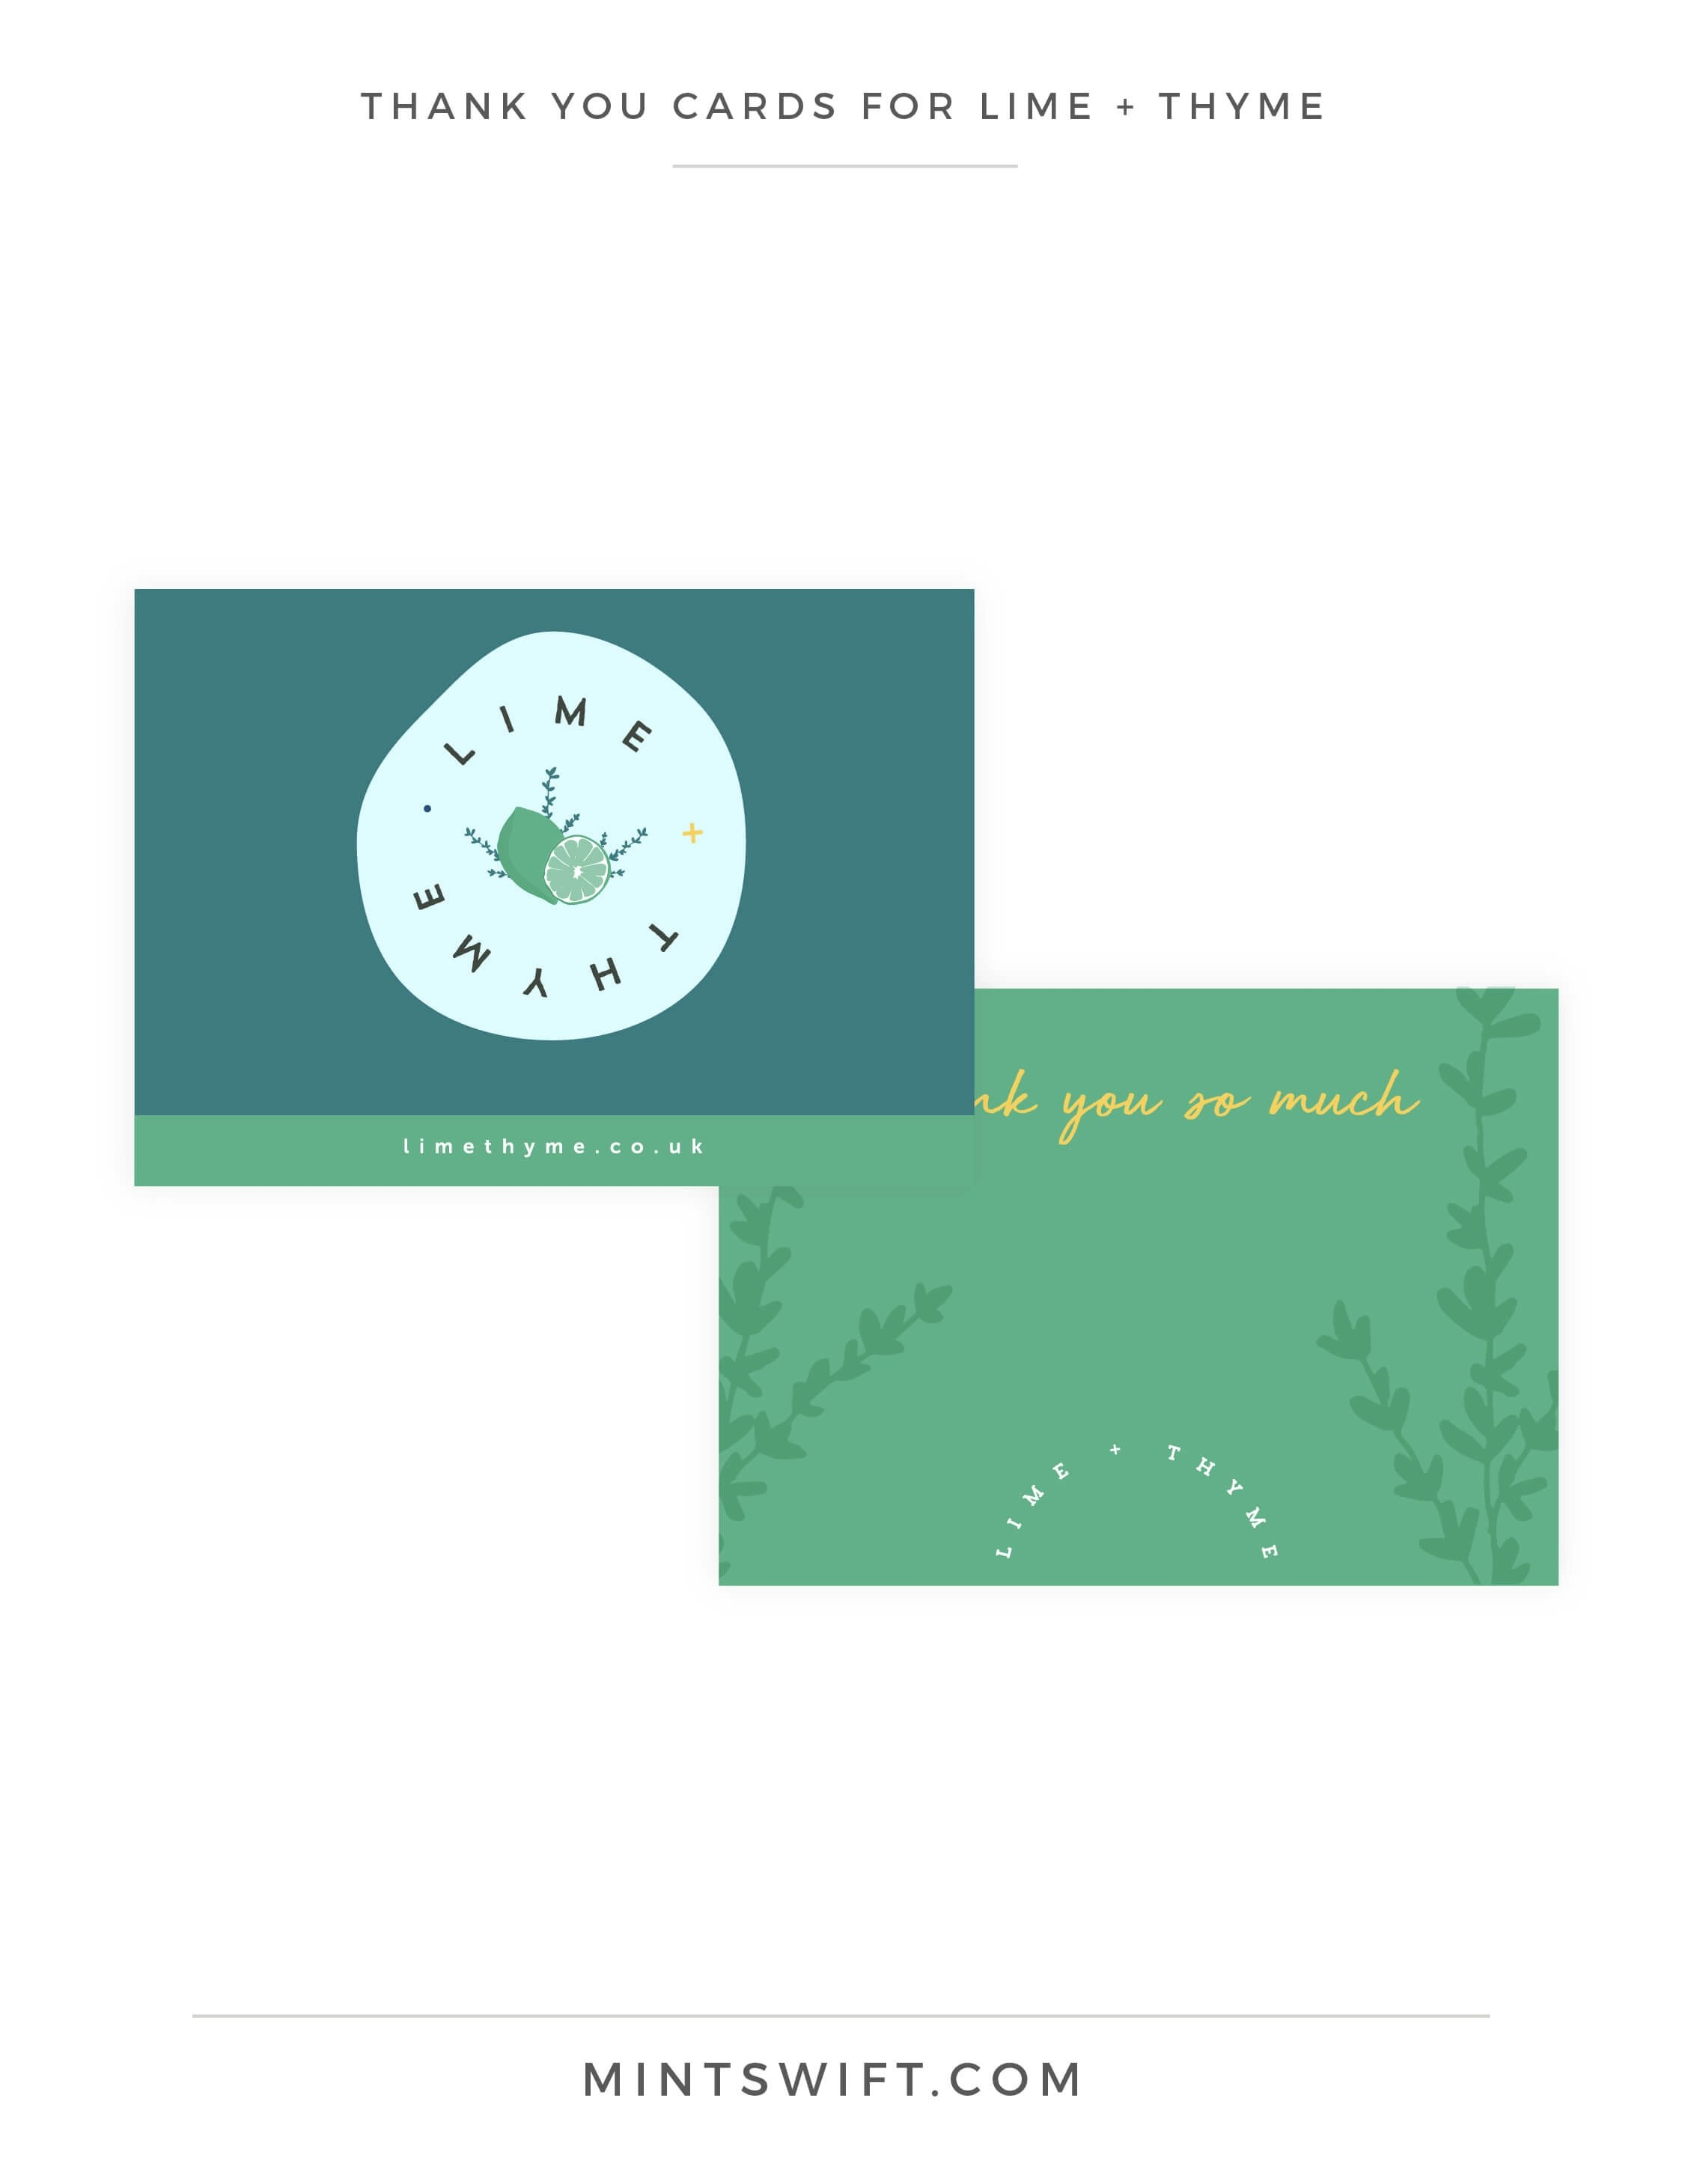 Lime + Thyme - Thank You Cards - Brand & Website Design - MintSwift